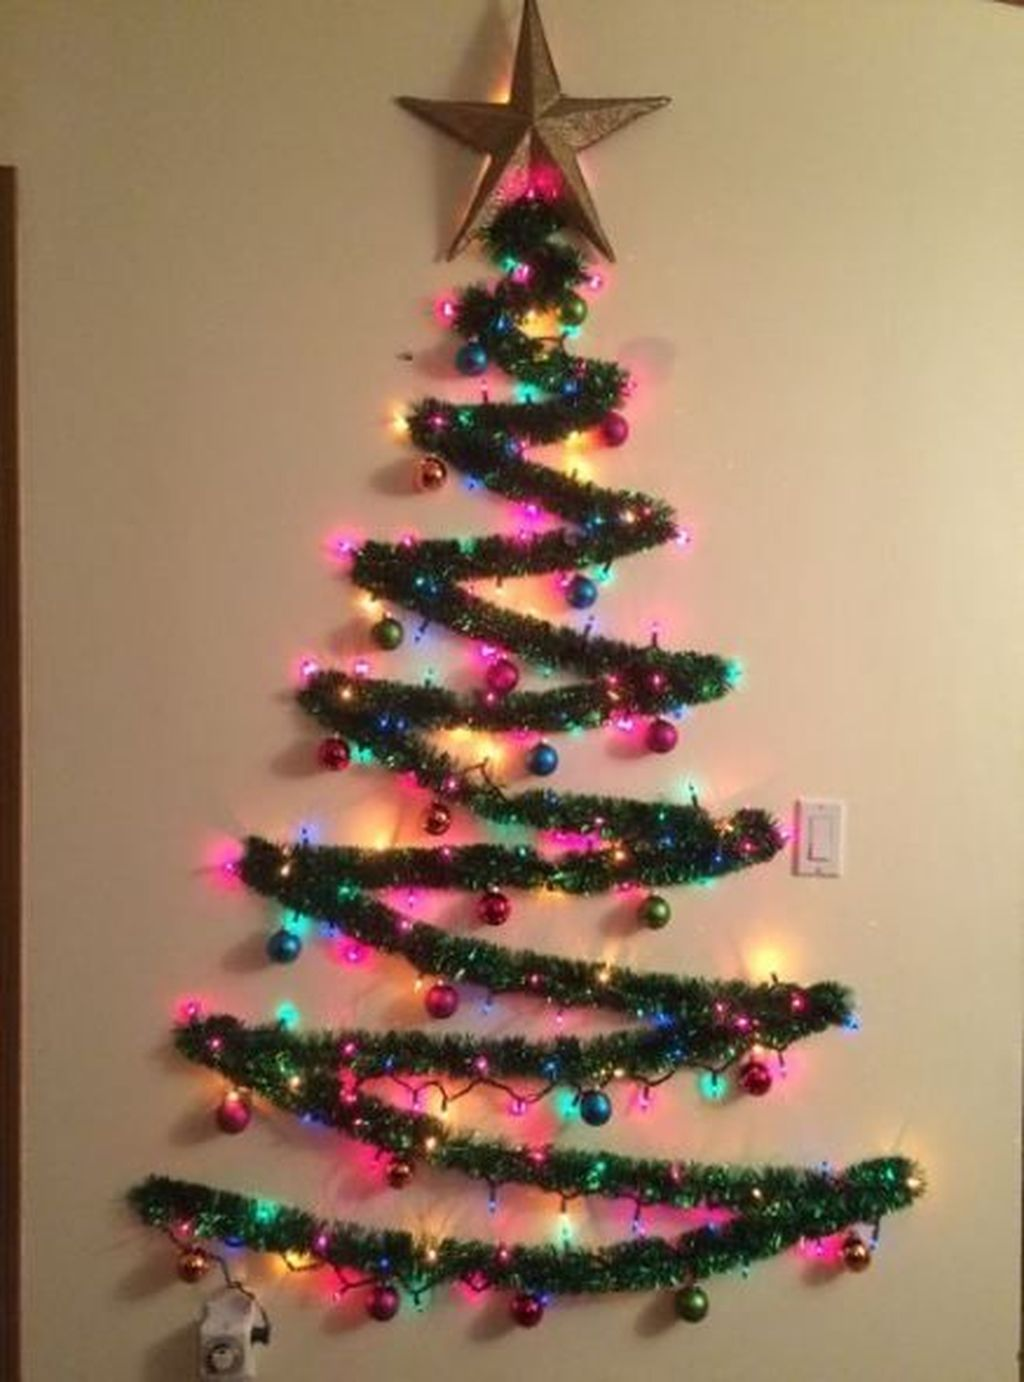 Amazing Christmas Lights Tree Decoration Ideas 04